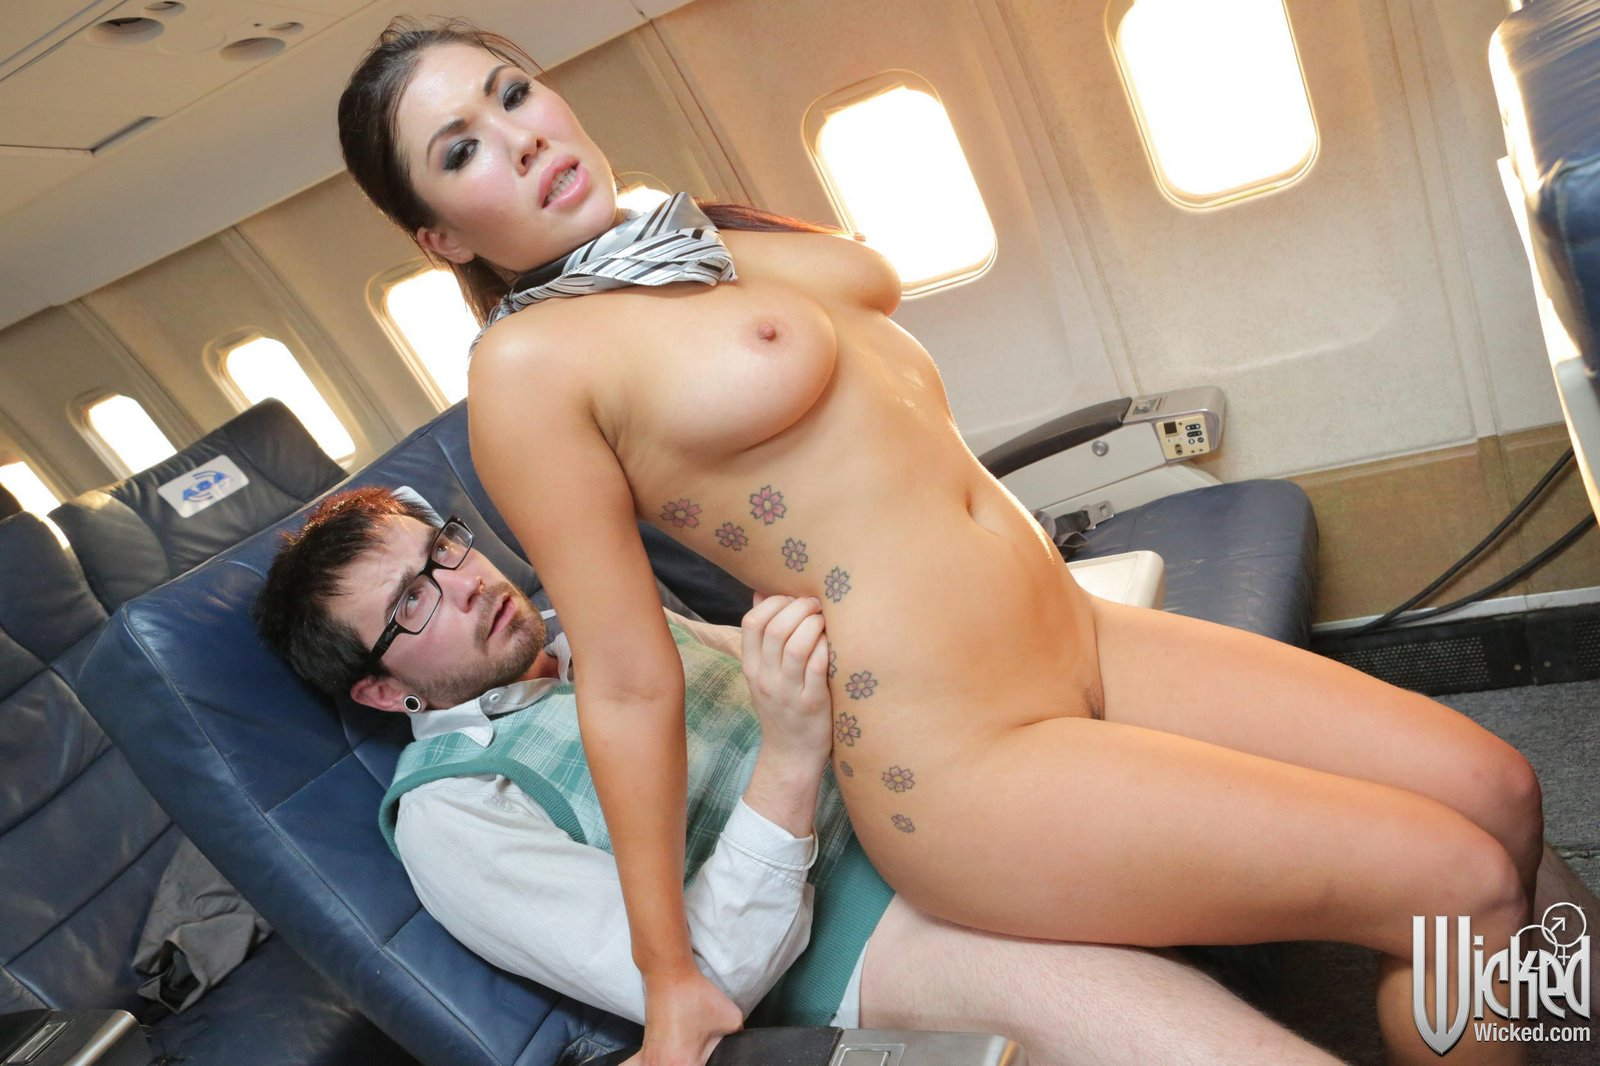 Nude air hostess sex there are